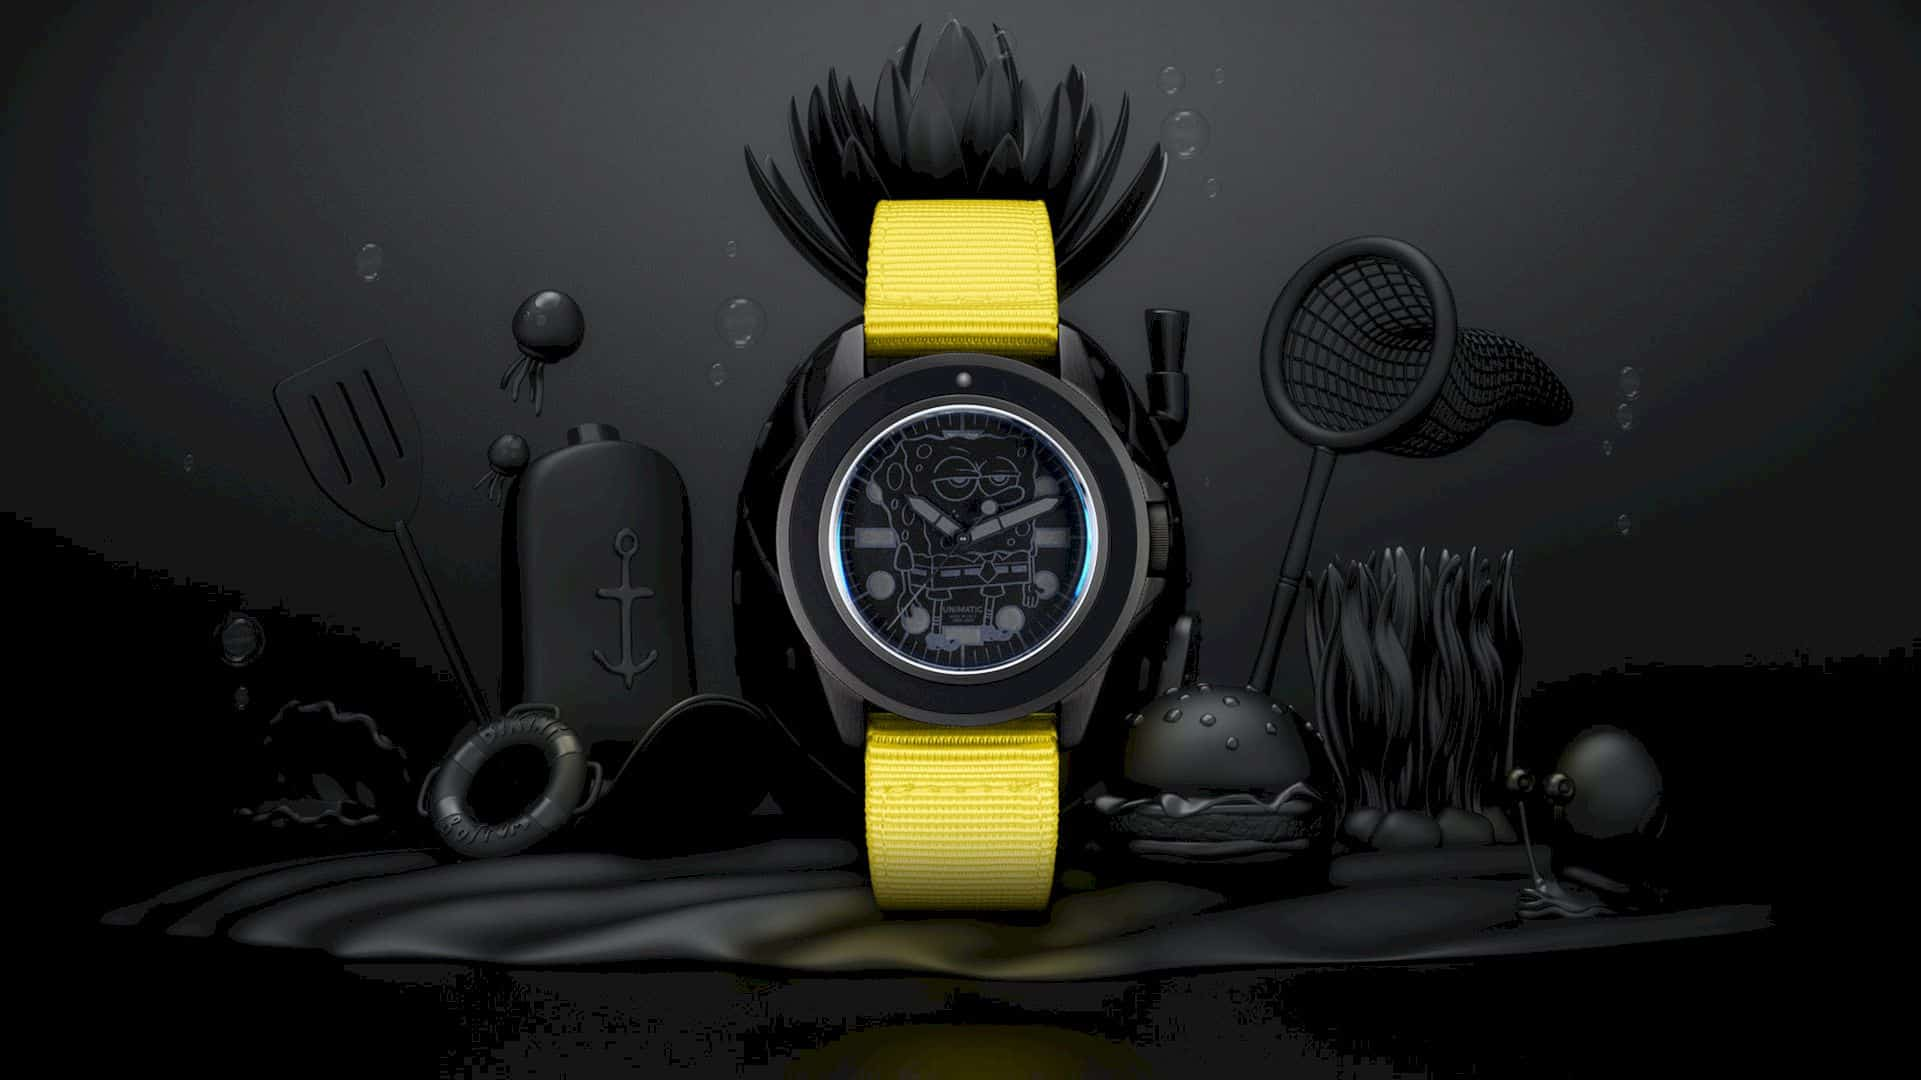 U1 SS UNIMATIC Limited Edition Watches 3